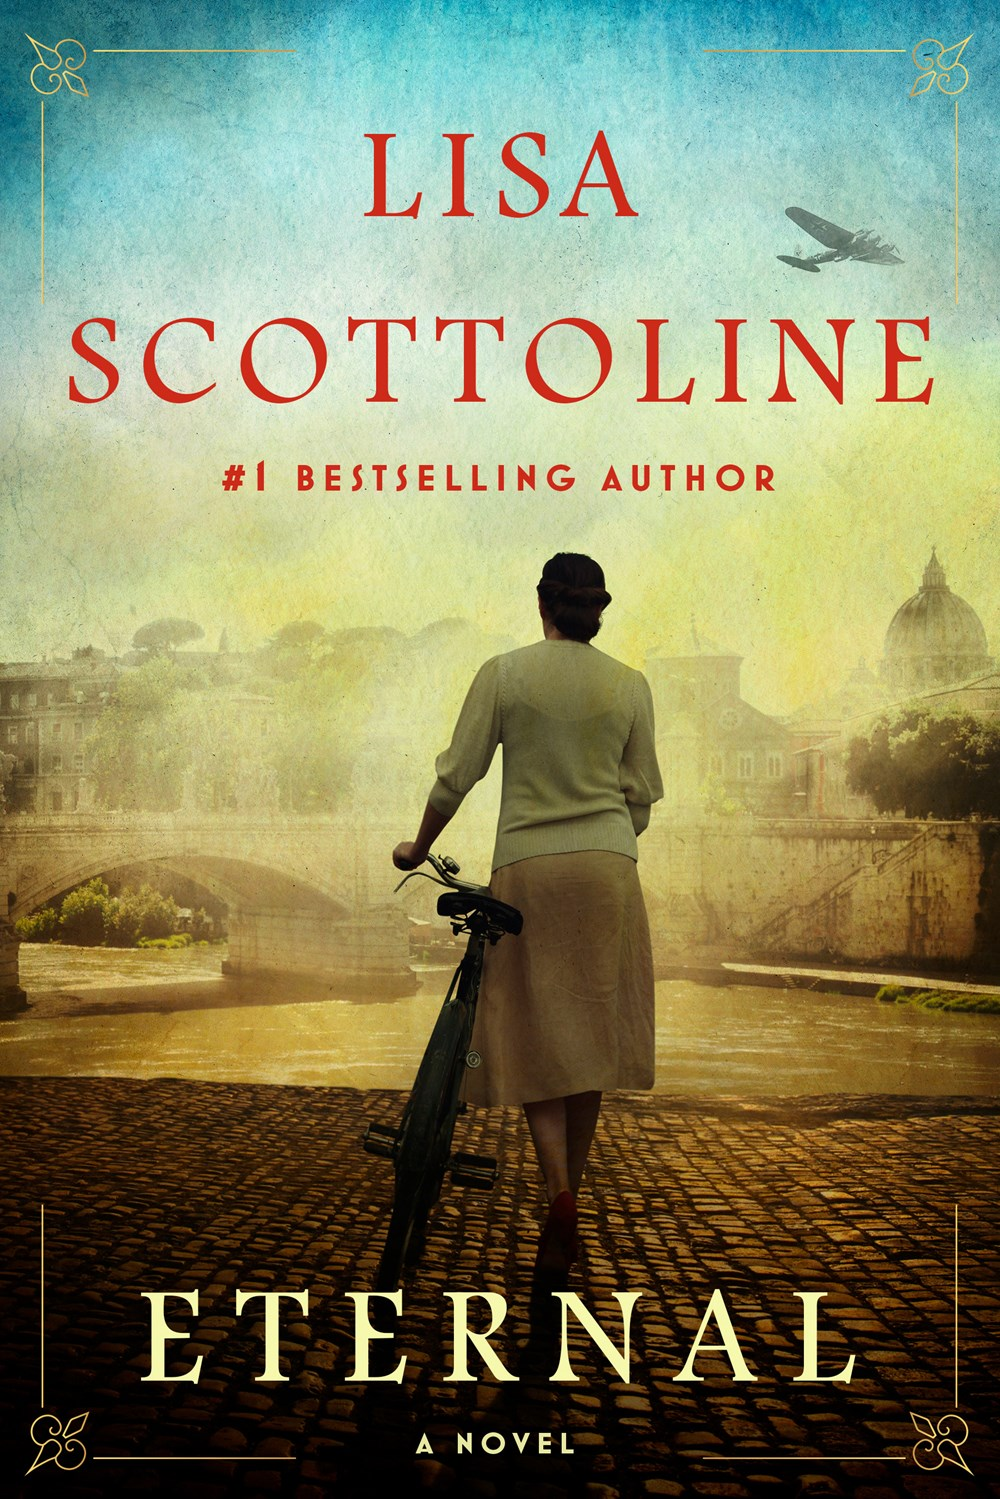 'Eternal' by Lisa Scottoline Leads New Bestsellers | Book Pulse